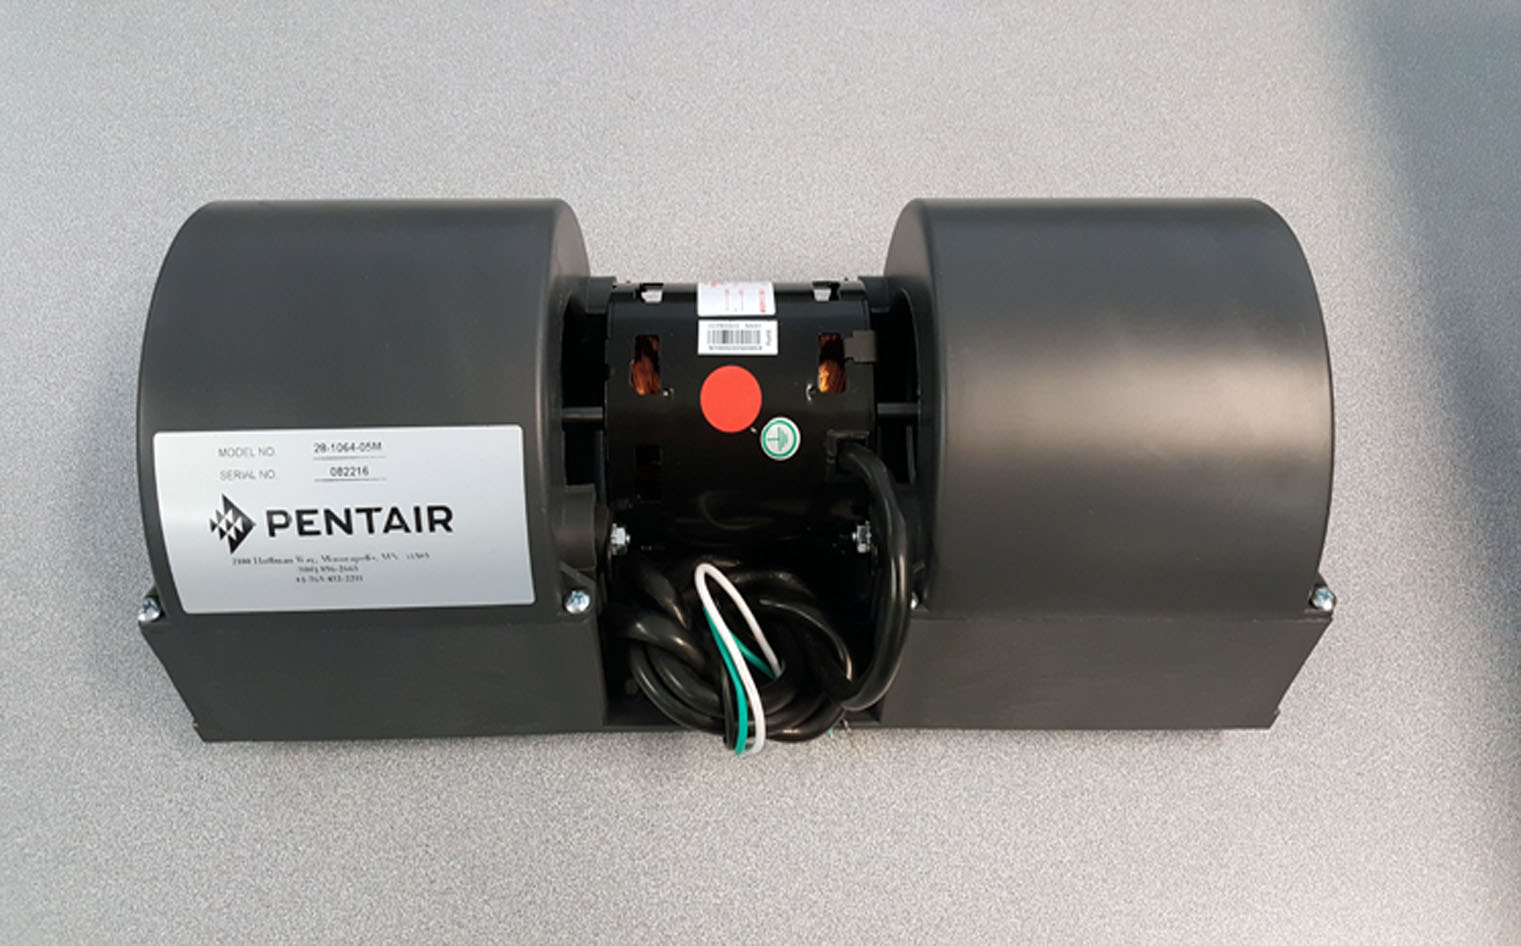 Pentair, Hoffman, McLean 28106405M Blower Assembly, 230 Volt